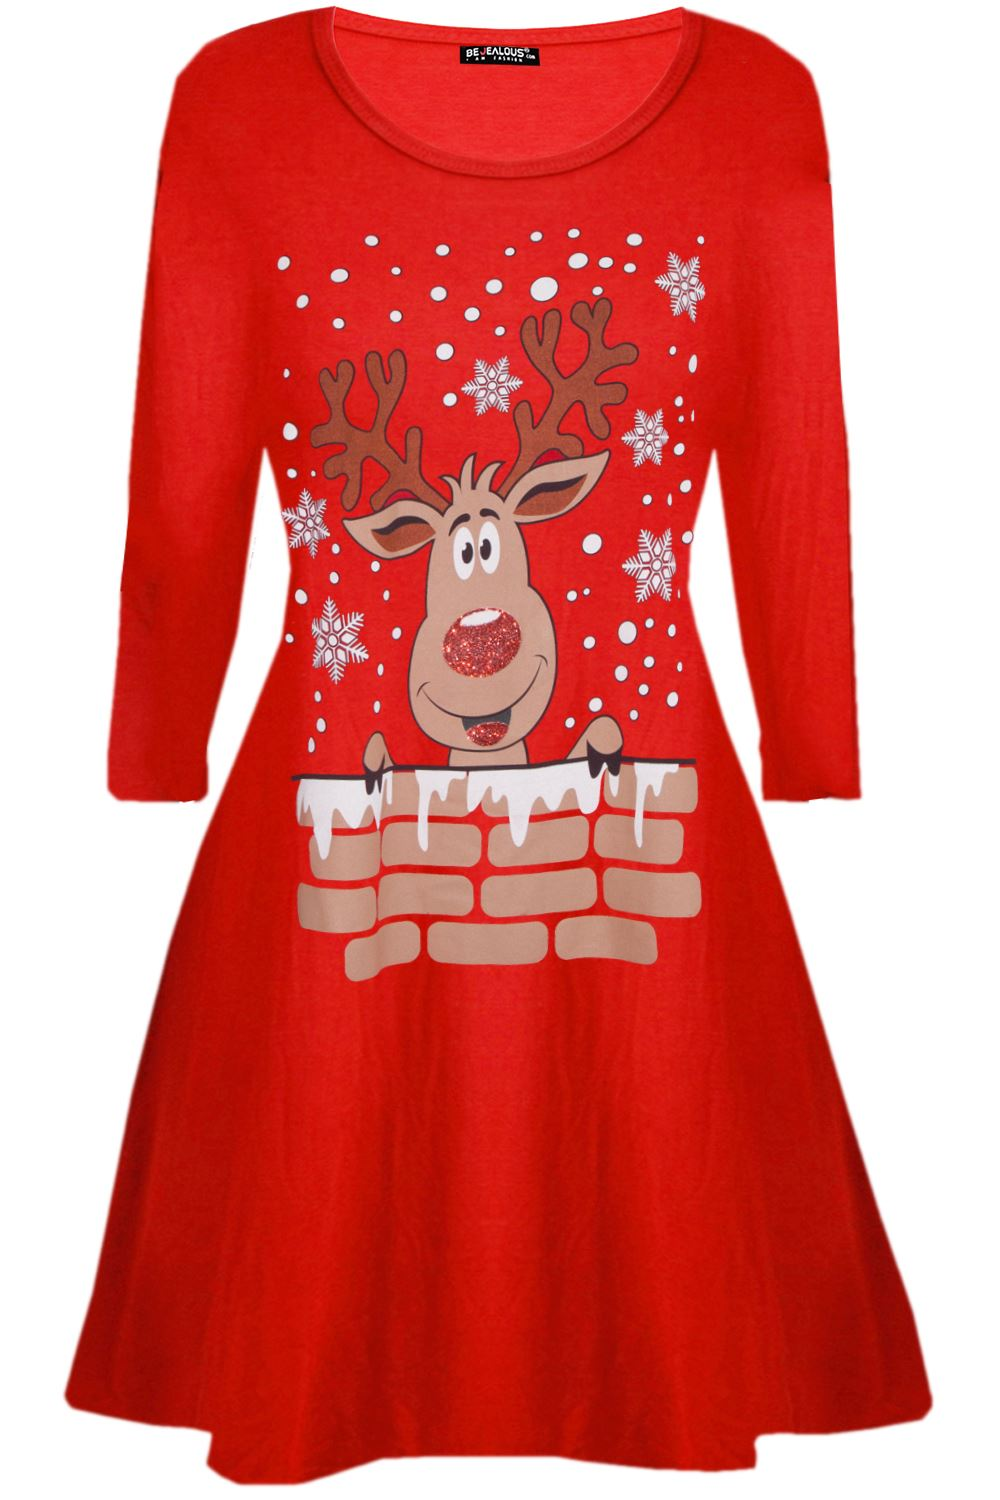 Womens-Ladies-Kids-Girls-Christmas-Xmas-Santa-Reindeer-Flared-Swing-Mini-Dress thumbnail 17